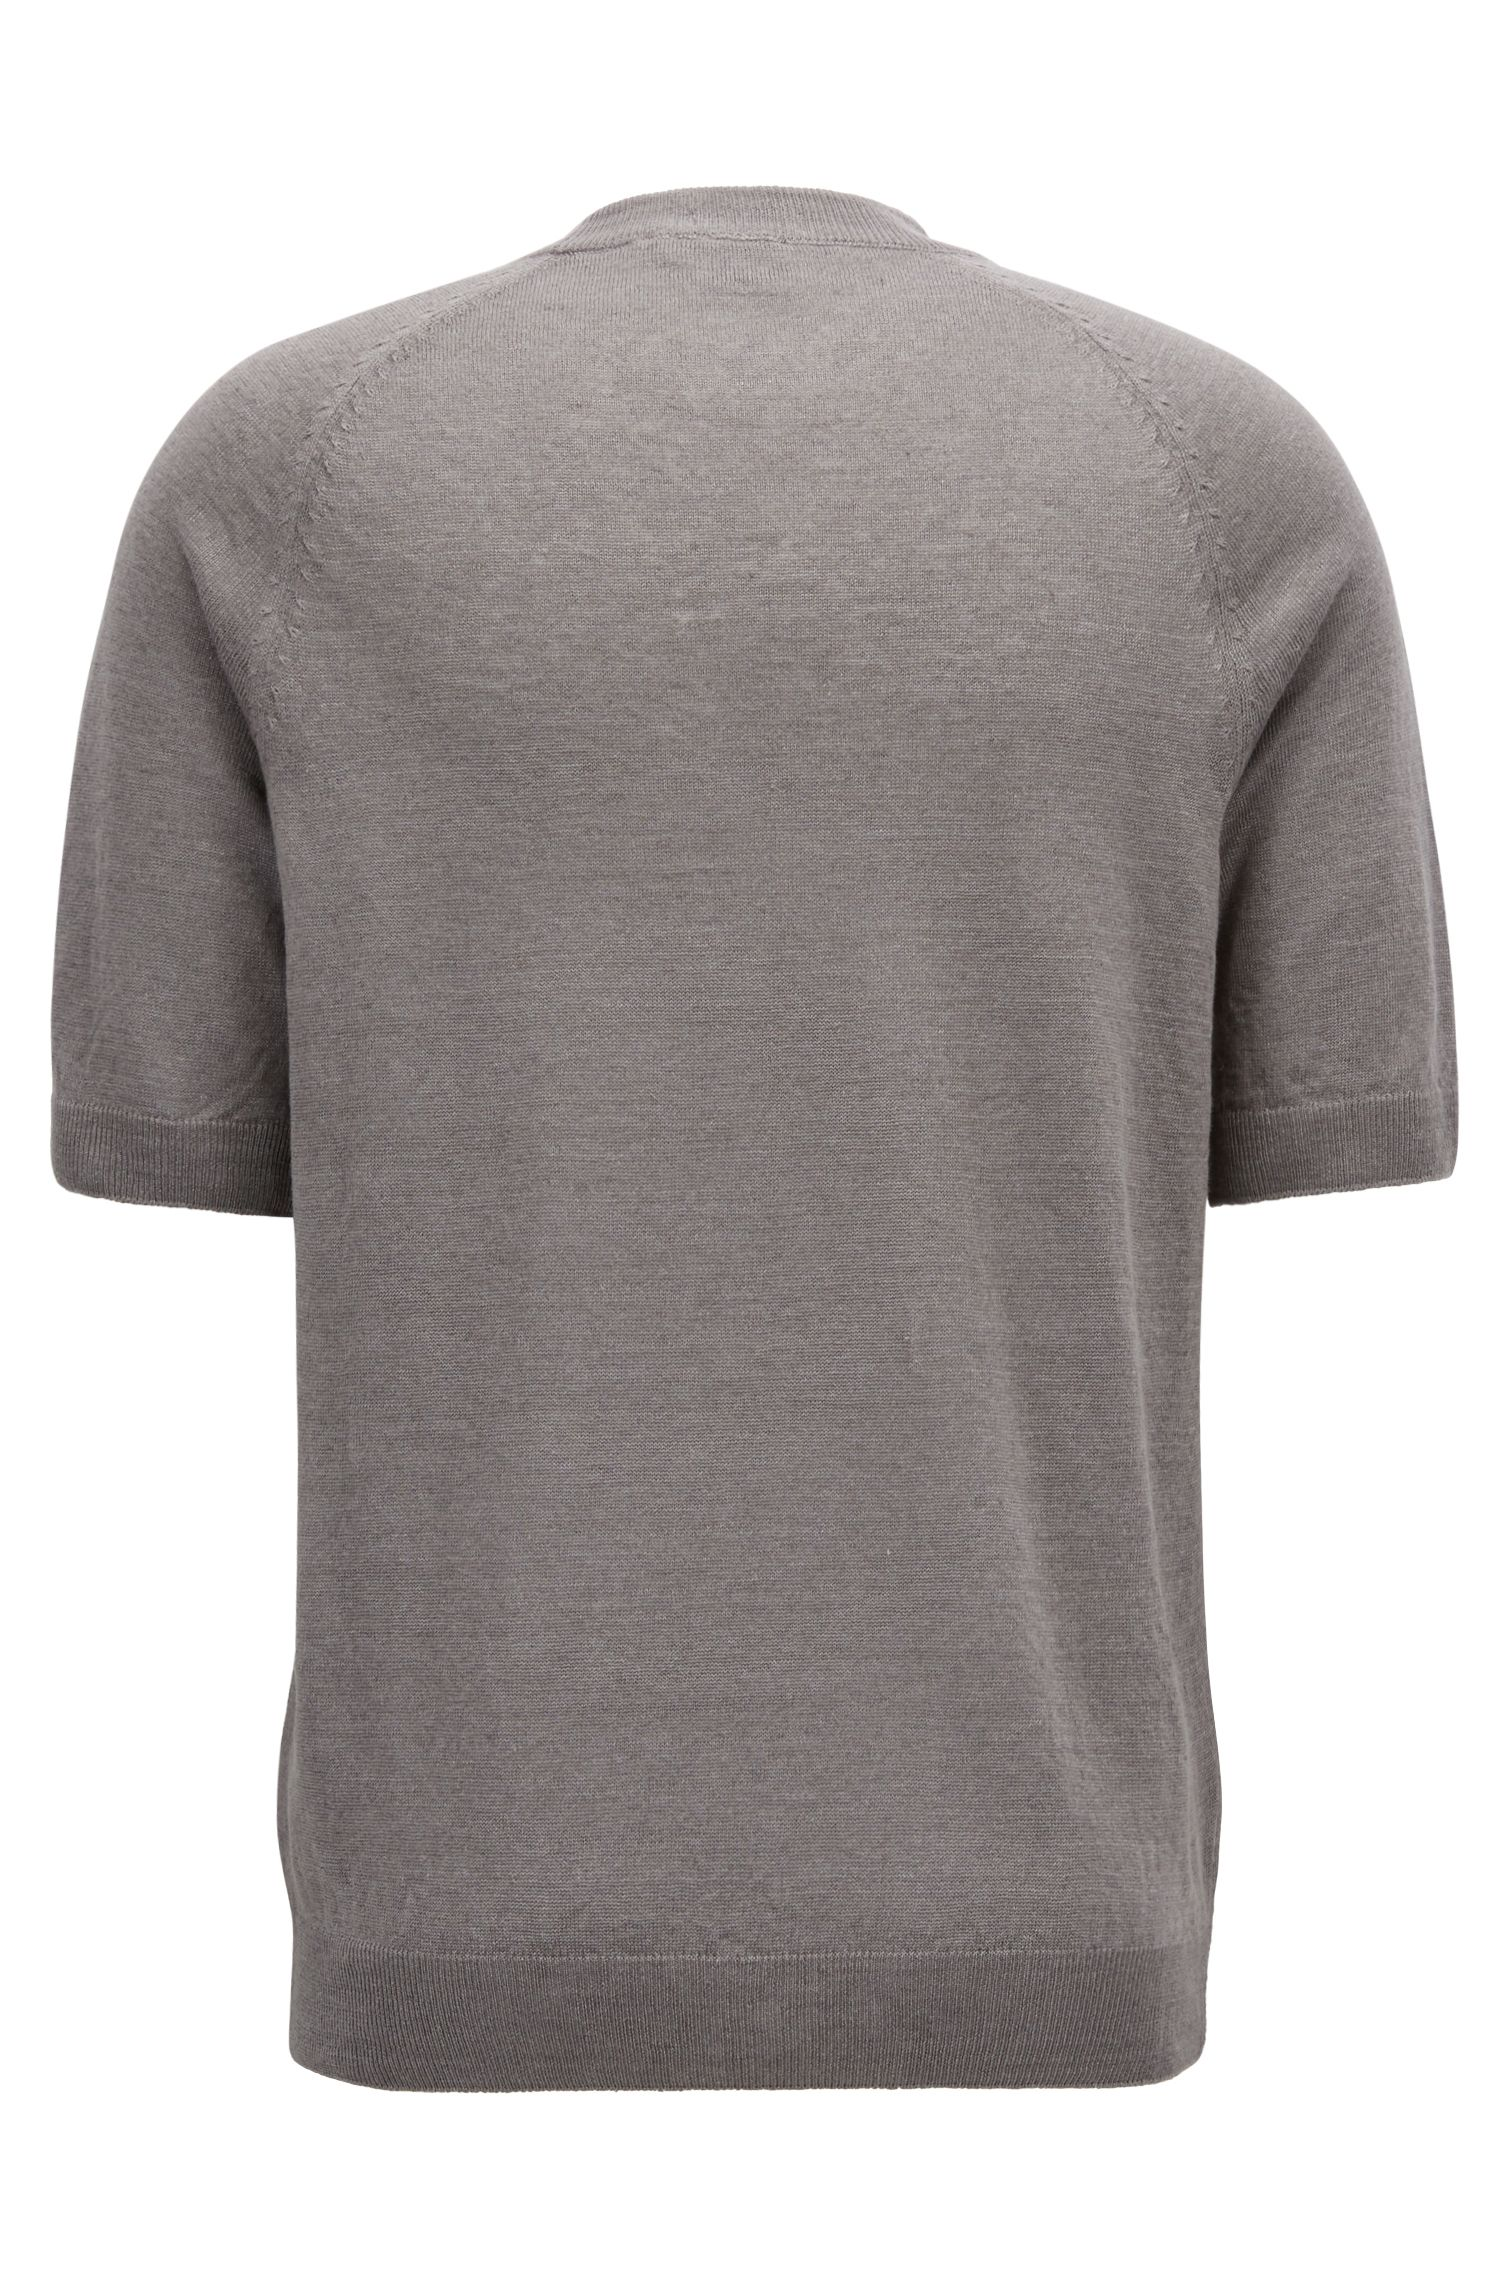 T-shirt-style sweater in linen jersey, Grey